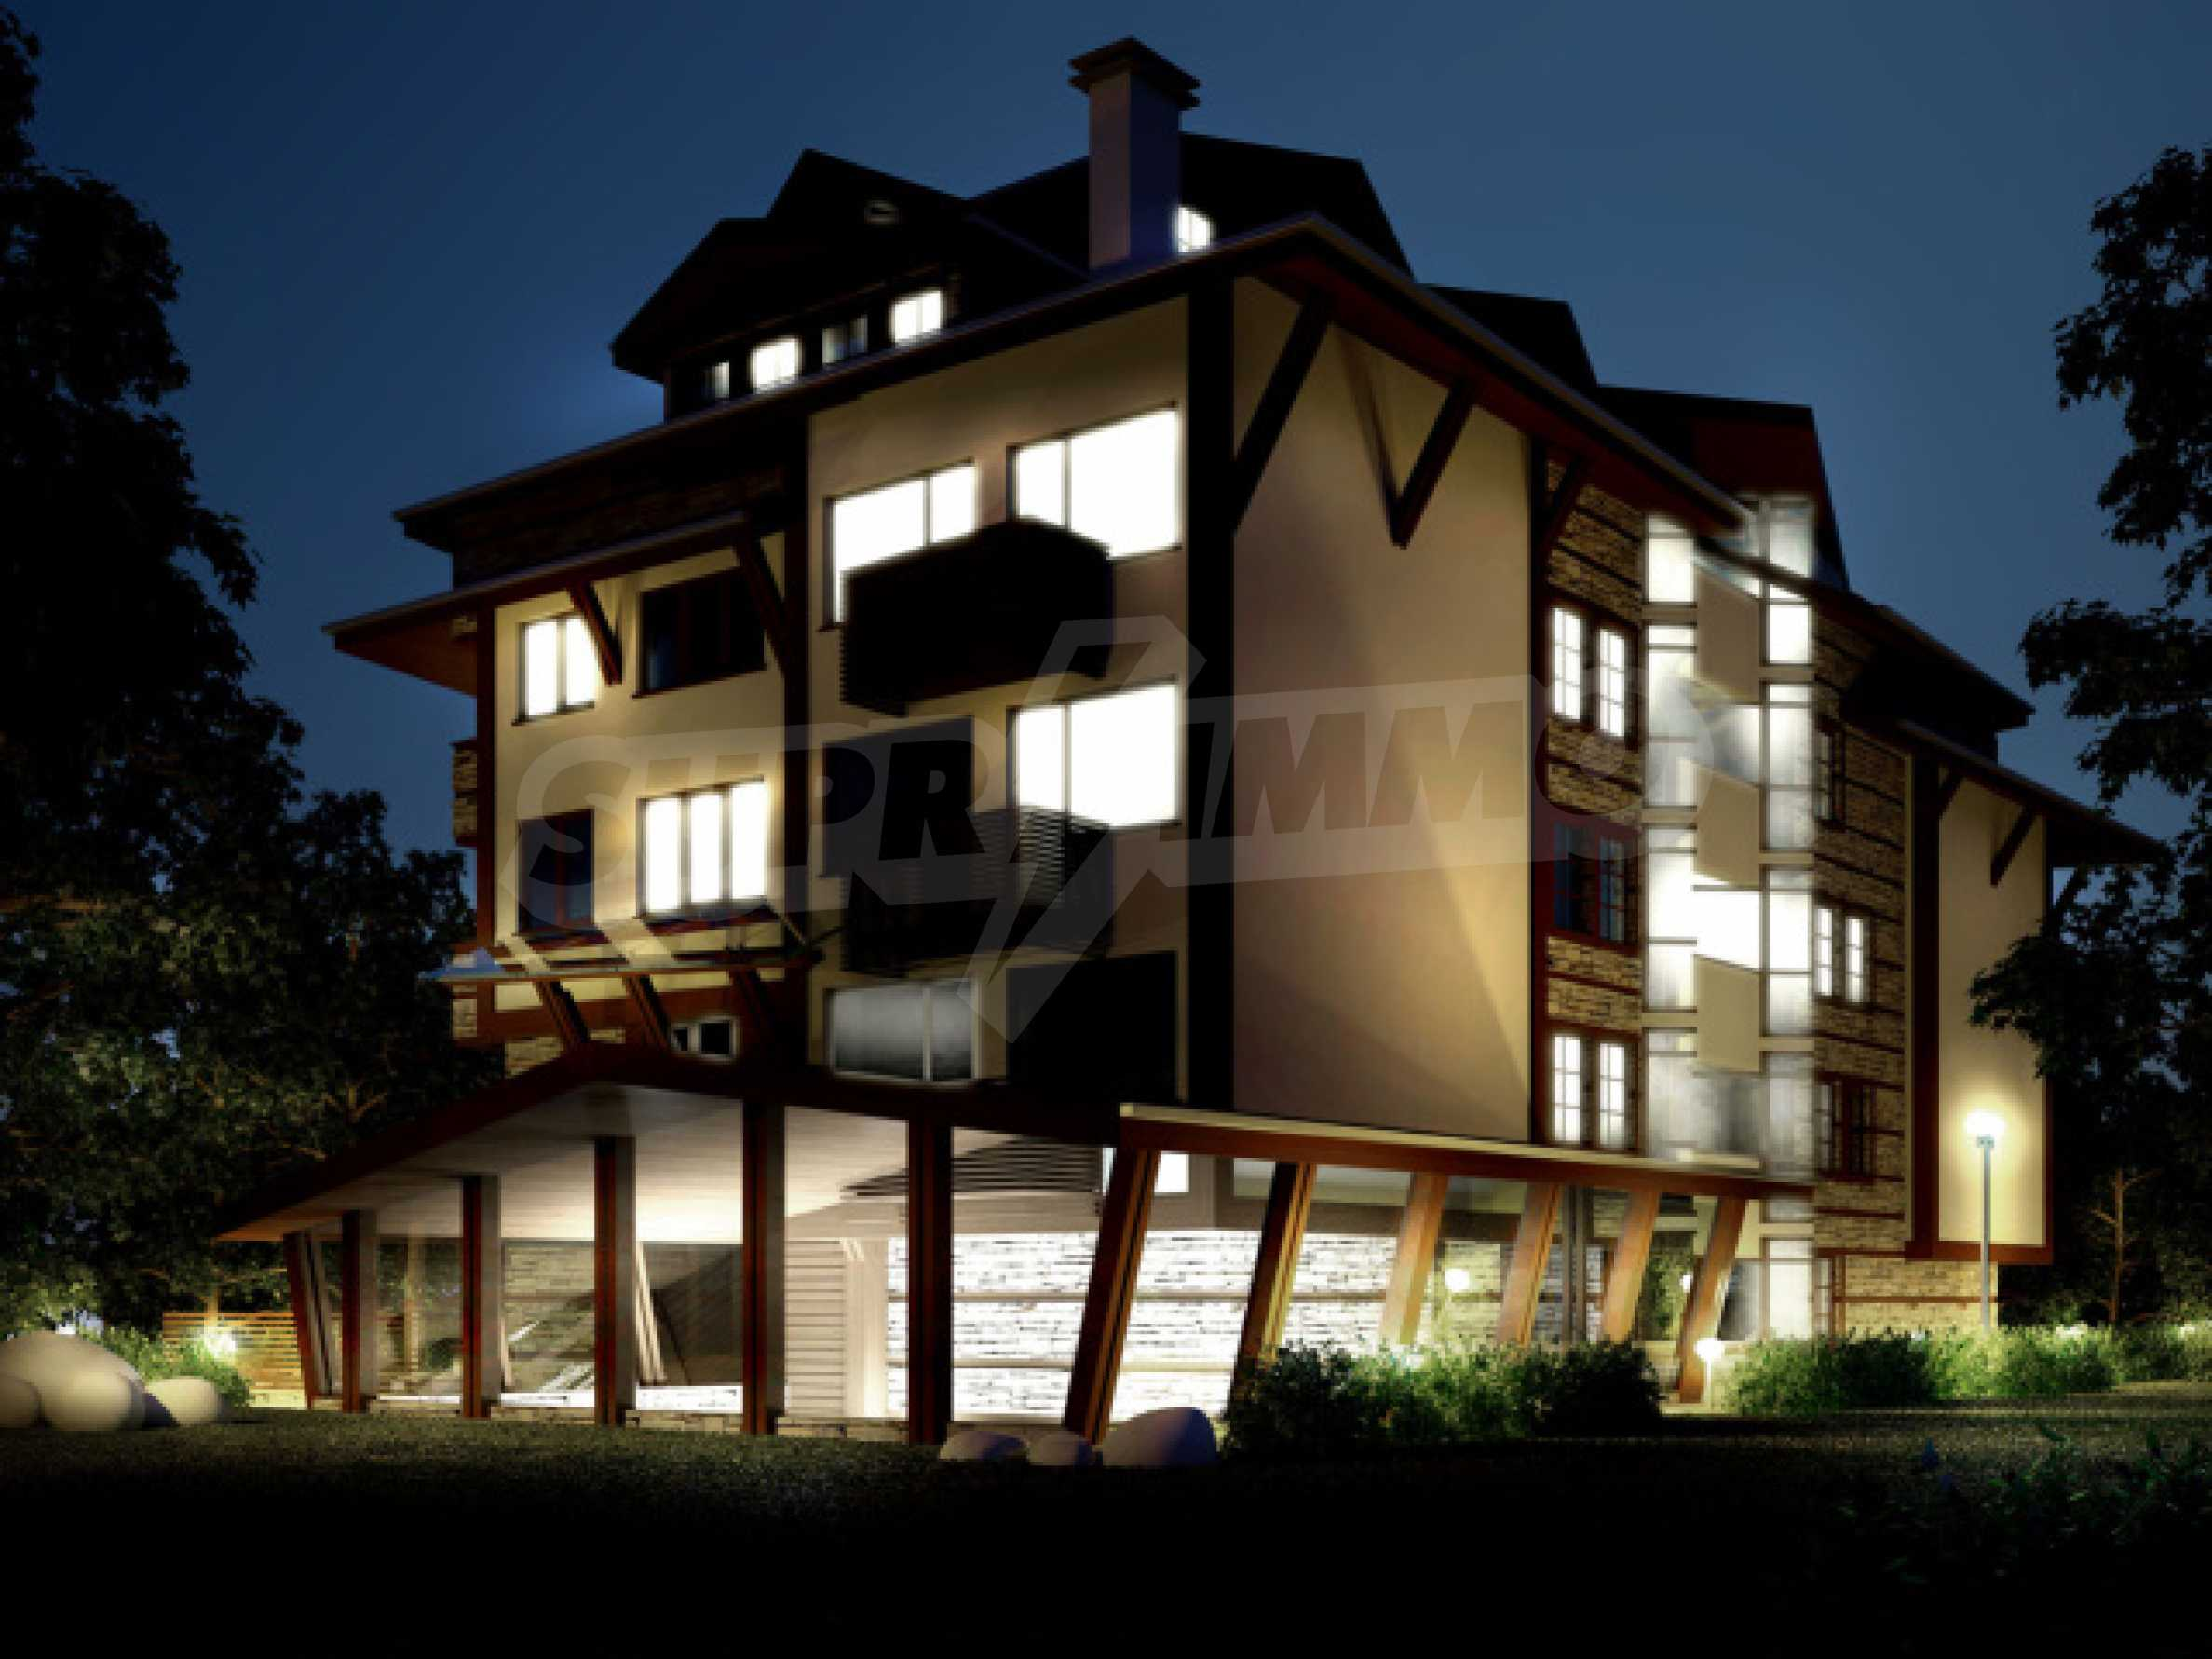 Chateau Blanc: Probably the best investment opportunity in Bansko... 3